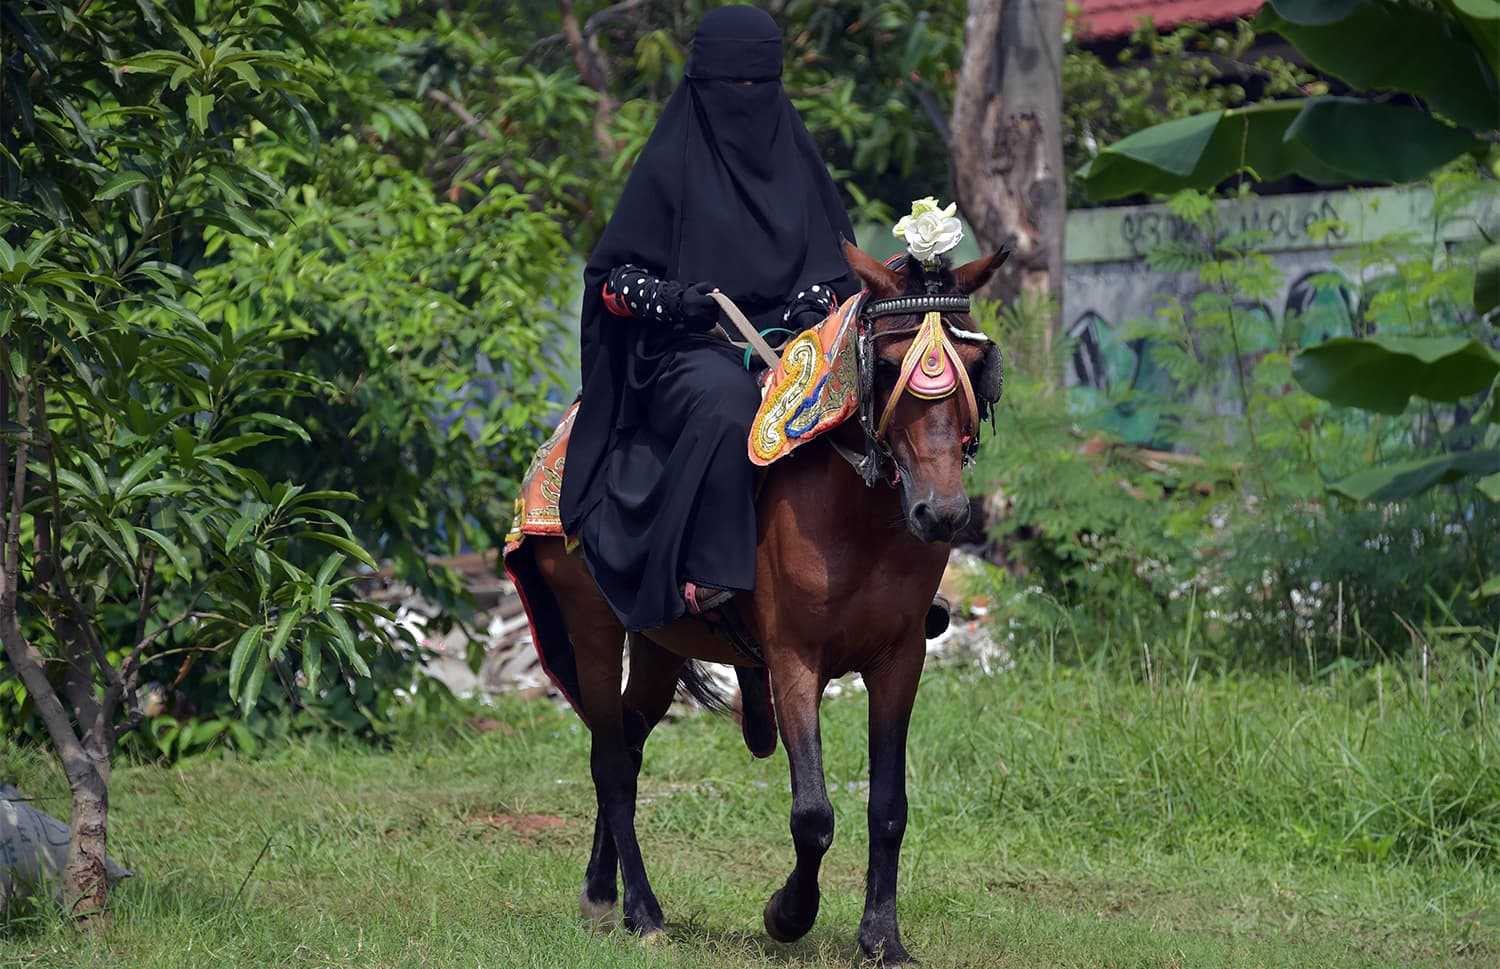 horse cave single muslim girls The latest tweets from i love naked girls (@gtmless5) rt just of the best pics.